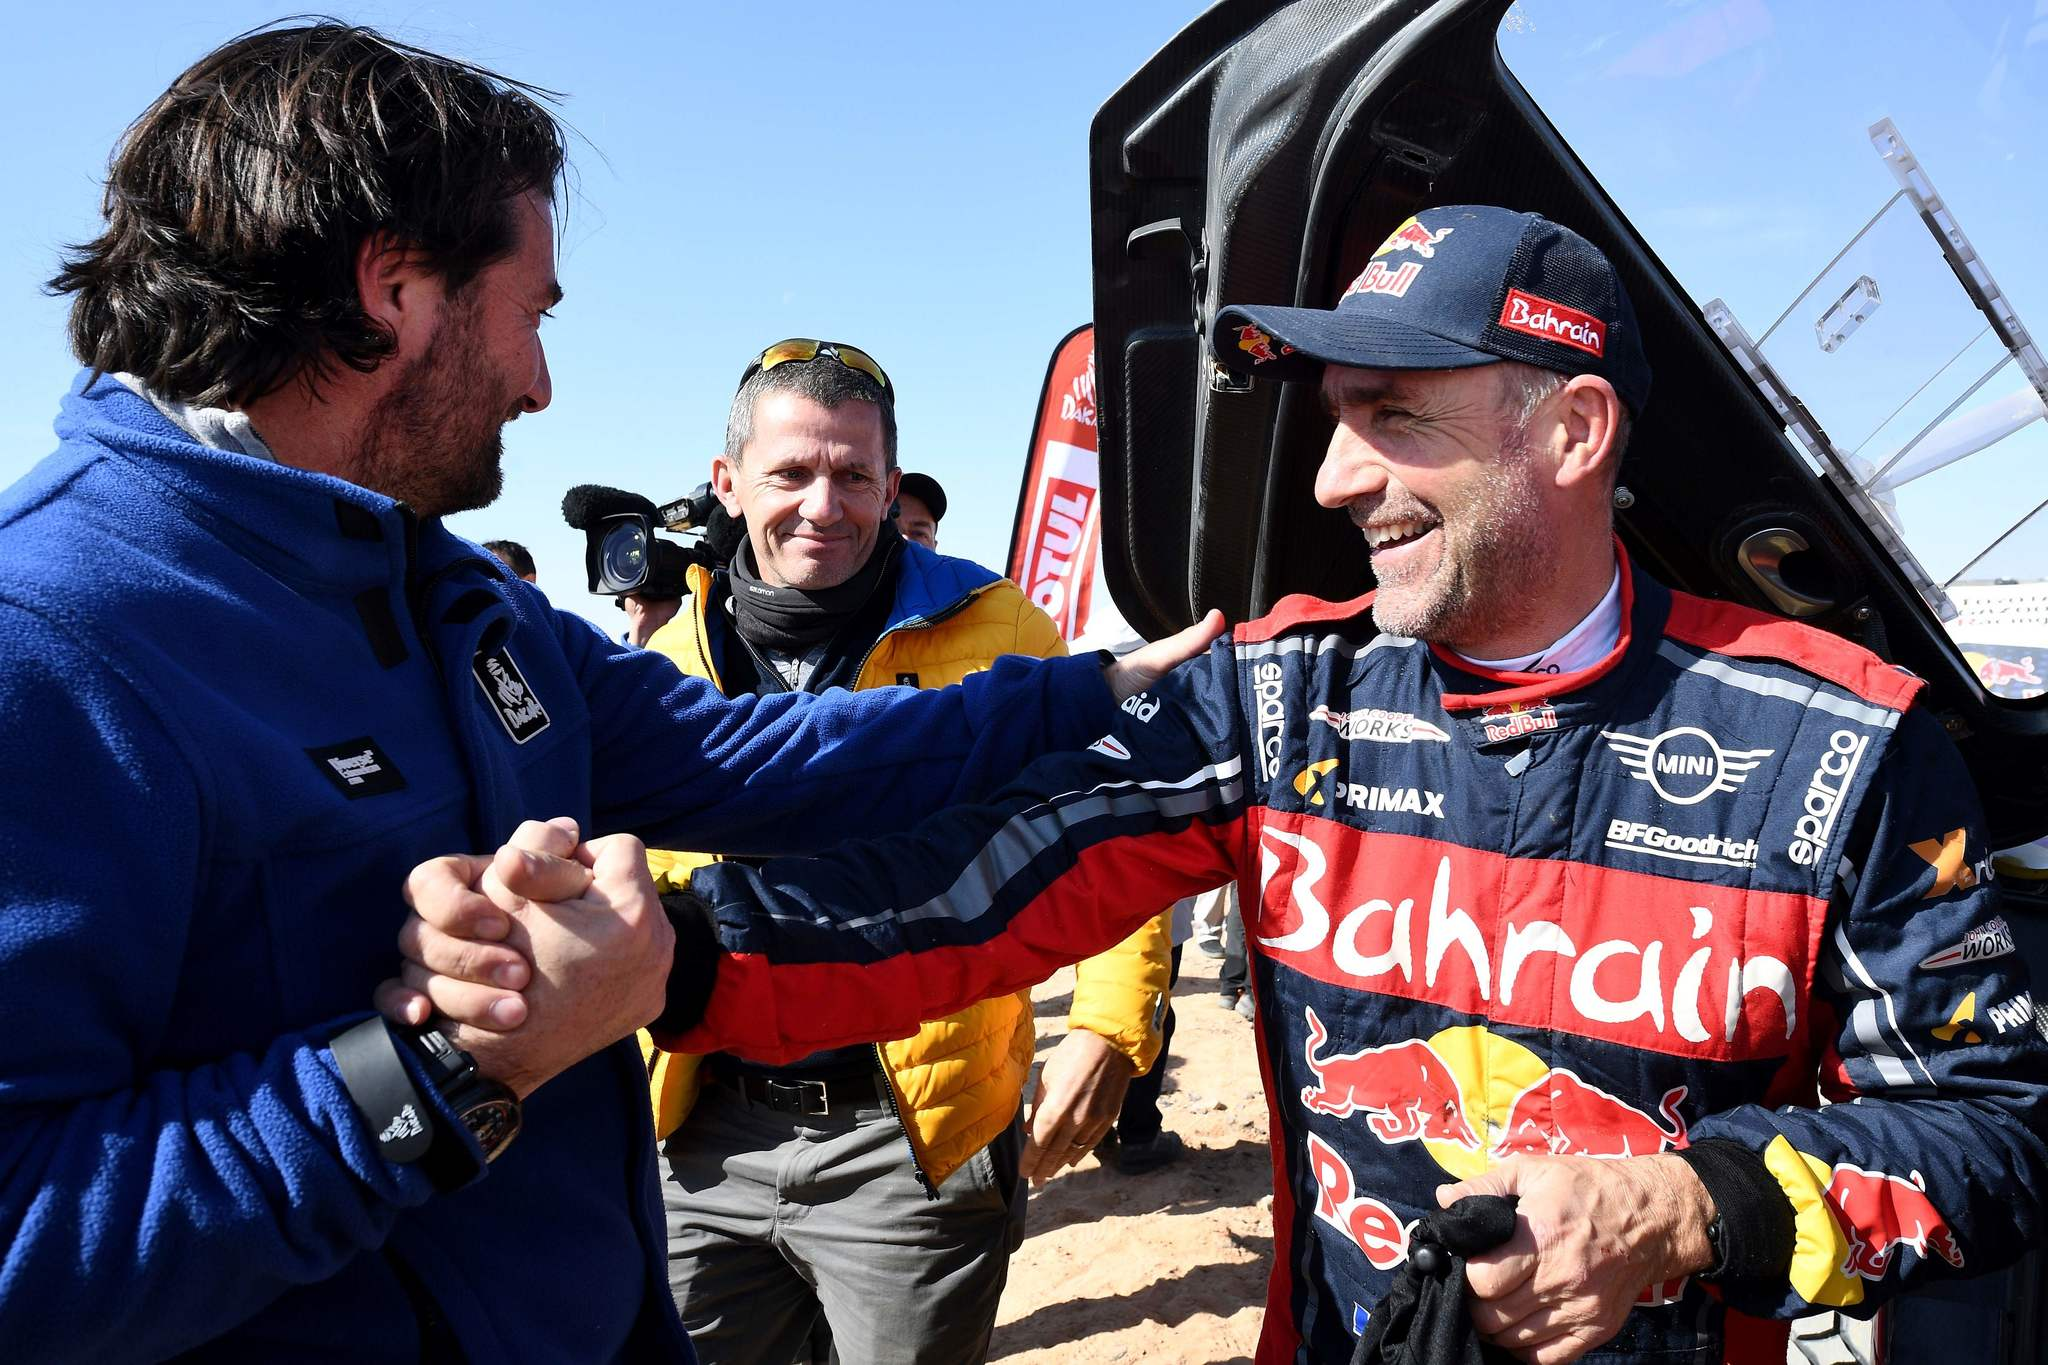 Auto category third-placed JCW X-RAID Mini Team Frances Stephane <HIT>Peterhansel</HIT> (R) shakes hands of The Dakar Rally director David Castera (L) next to Managing director of Amaury Sport Organisation (ASO) Yann Le Moenner (C) on the finish area in Qiddiya at the end of the stage 12 of the Dakar 2020 between Haradh and Qiddiya, Saudi Arabia, on January 17, 2020. (Photo by FRANCK FIFE / AFP)